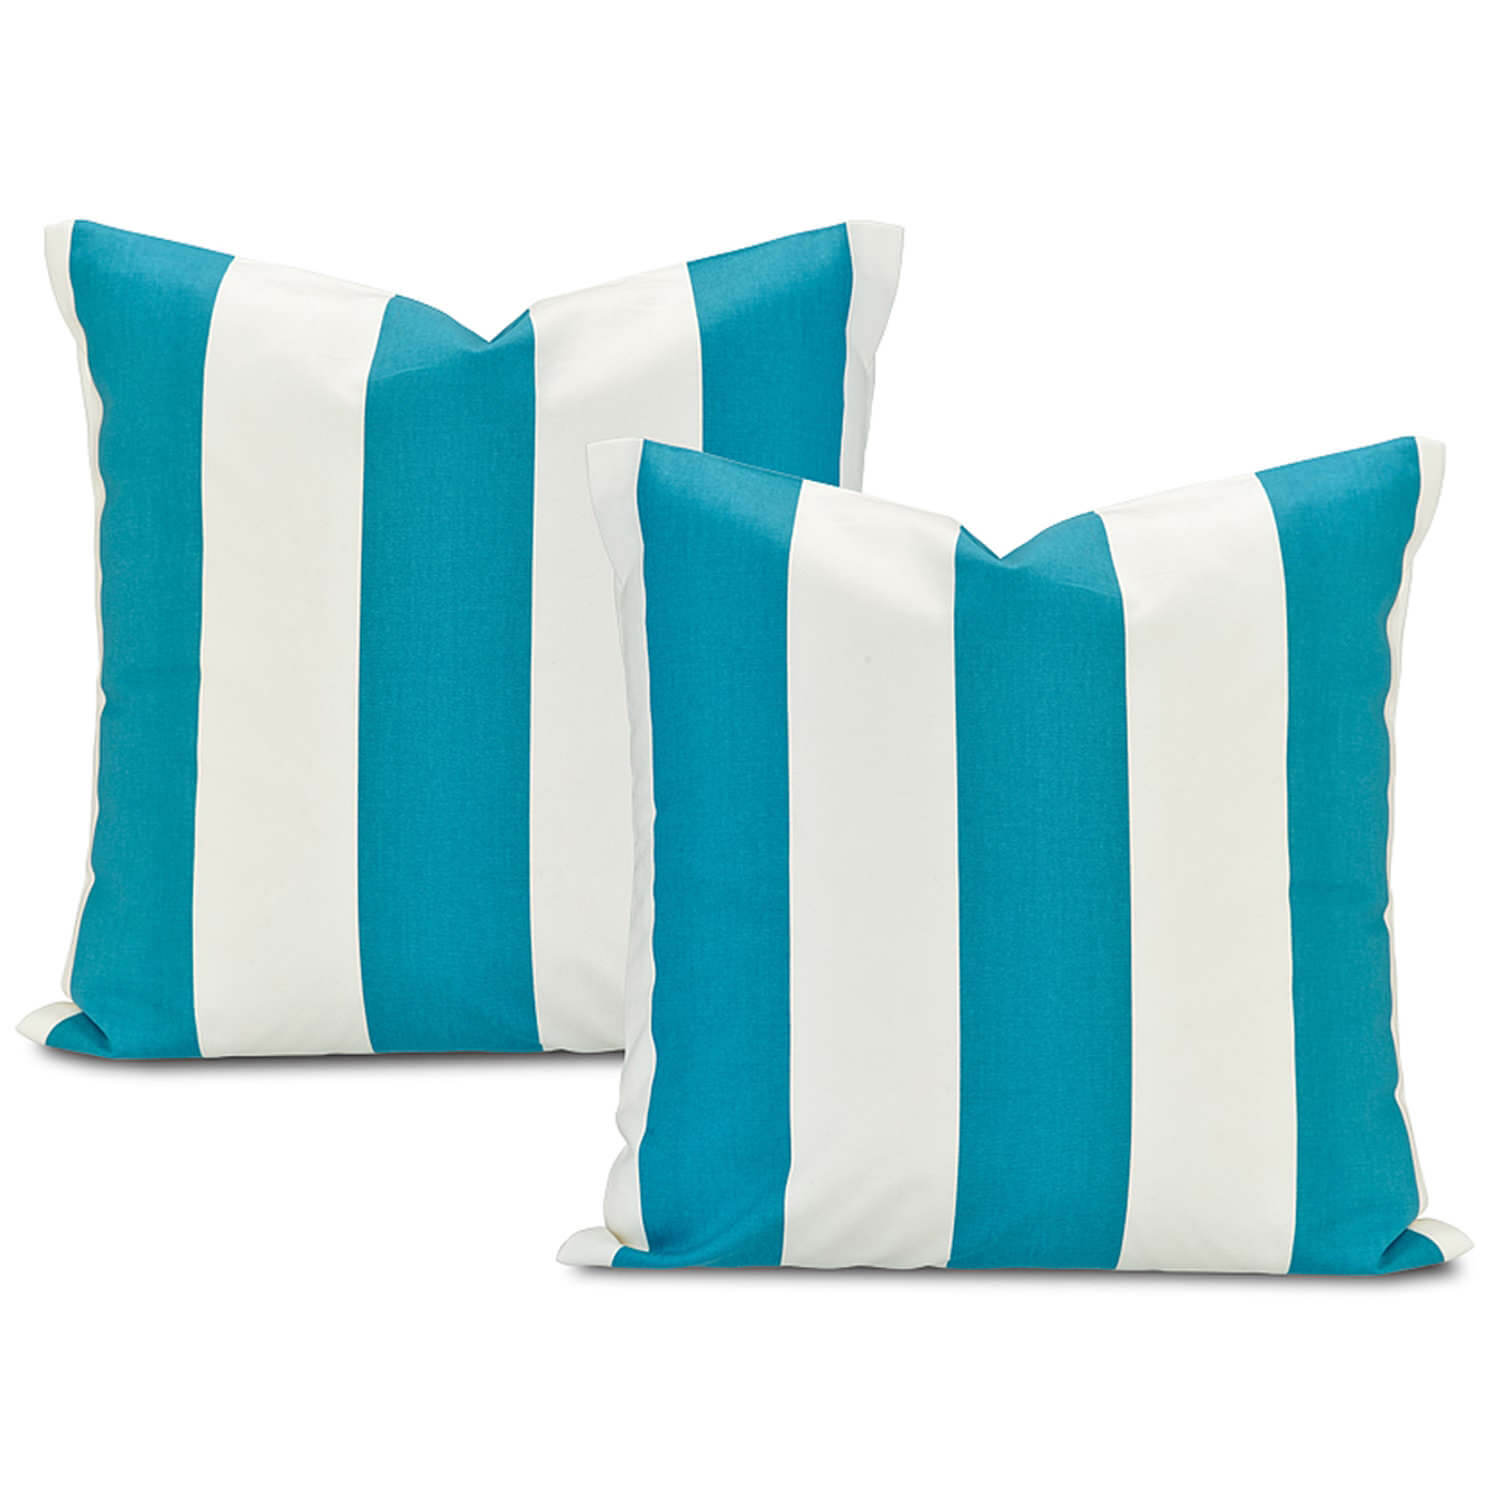 Cabana Teal Printed Cotton Cushion Cover (Pair)